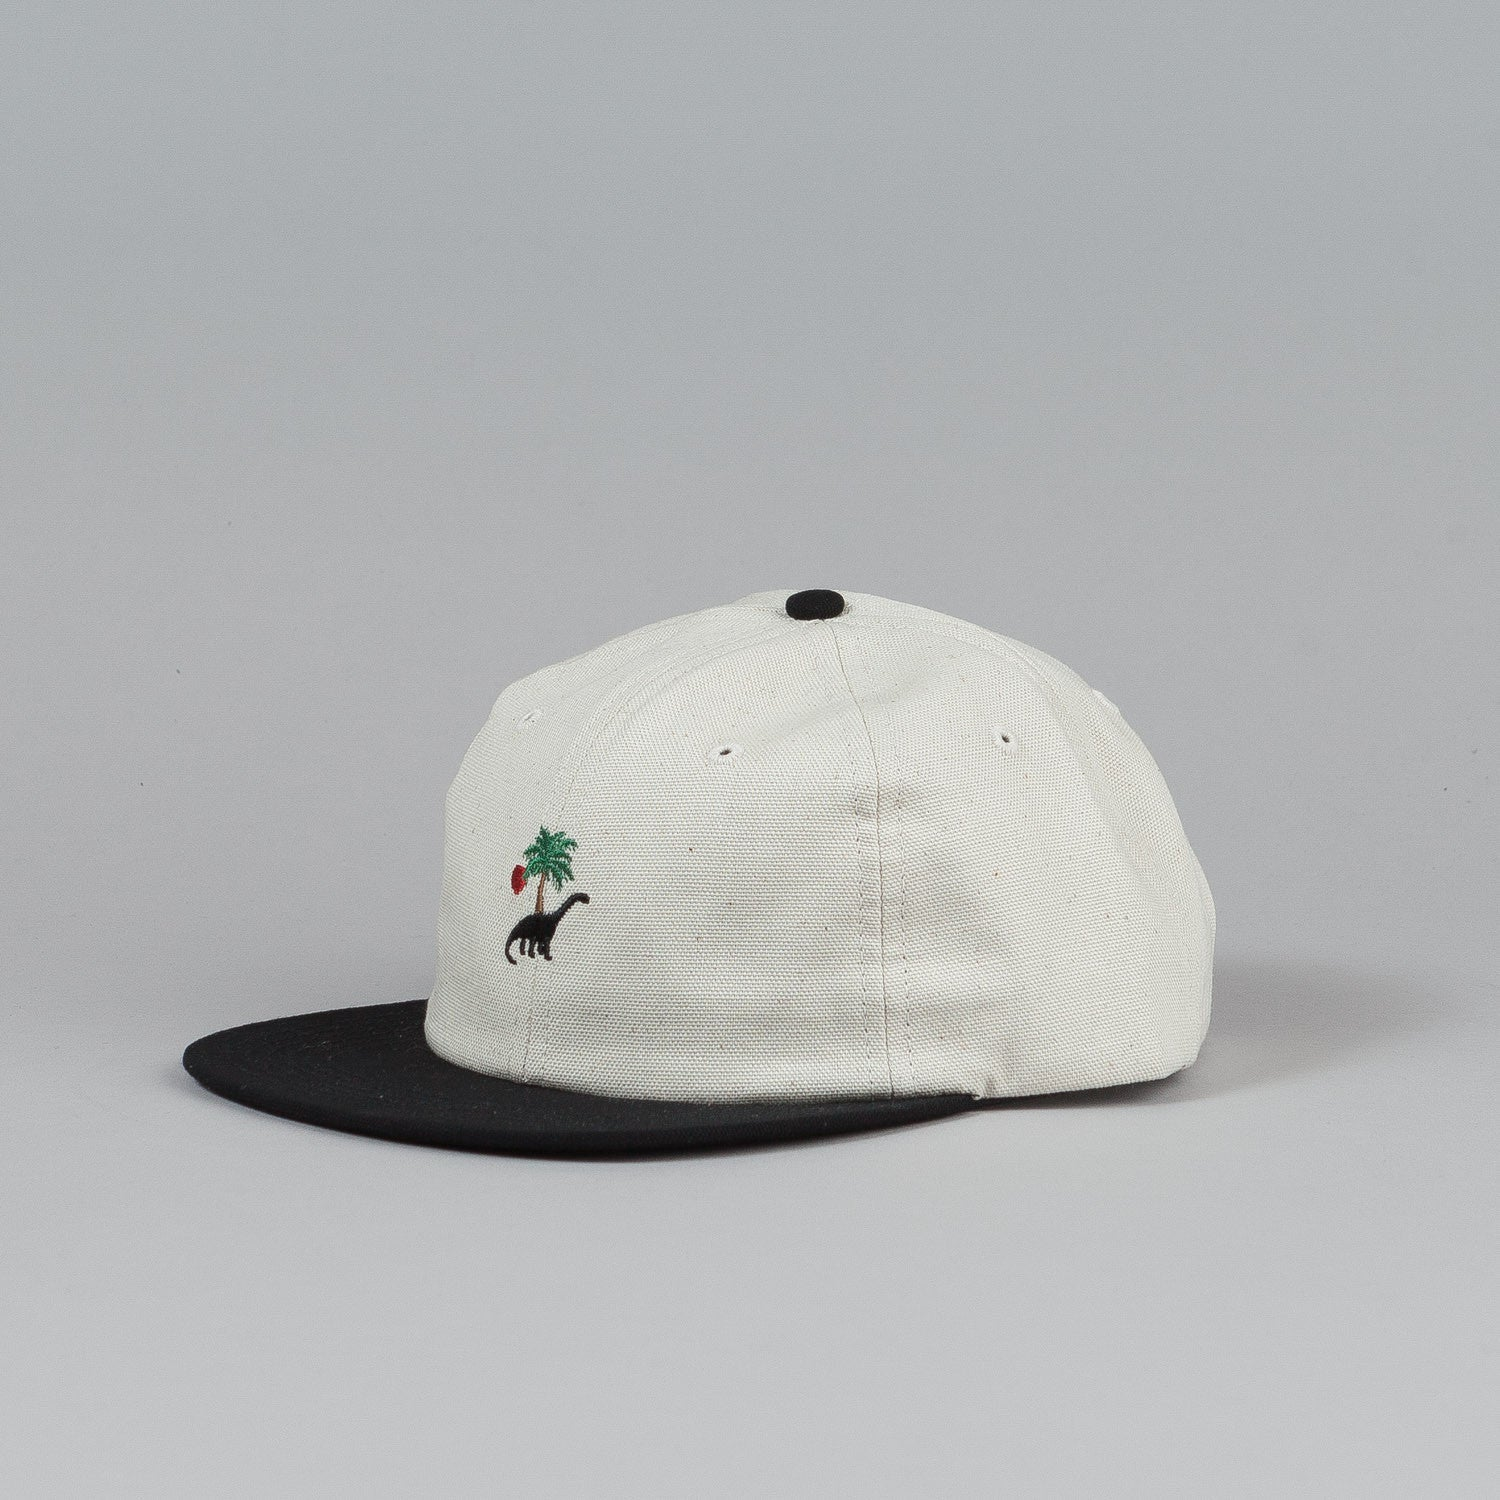 Belief Prehistoric 6 Panel Cap Bone / Black